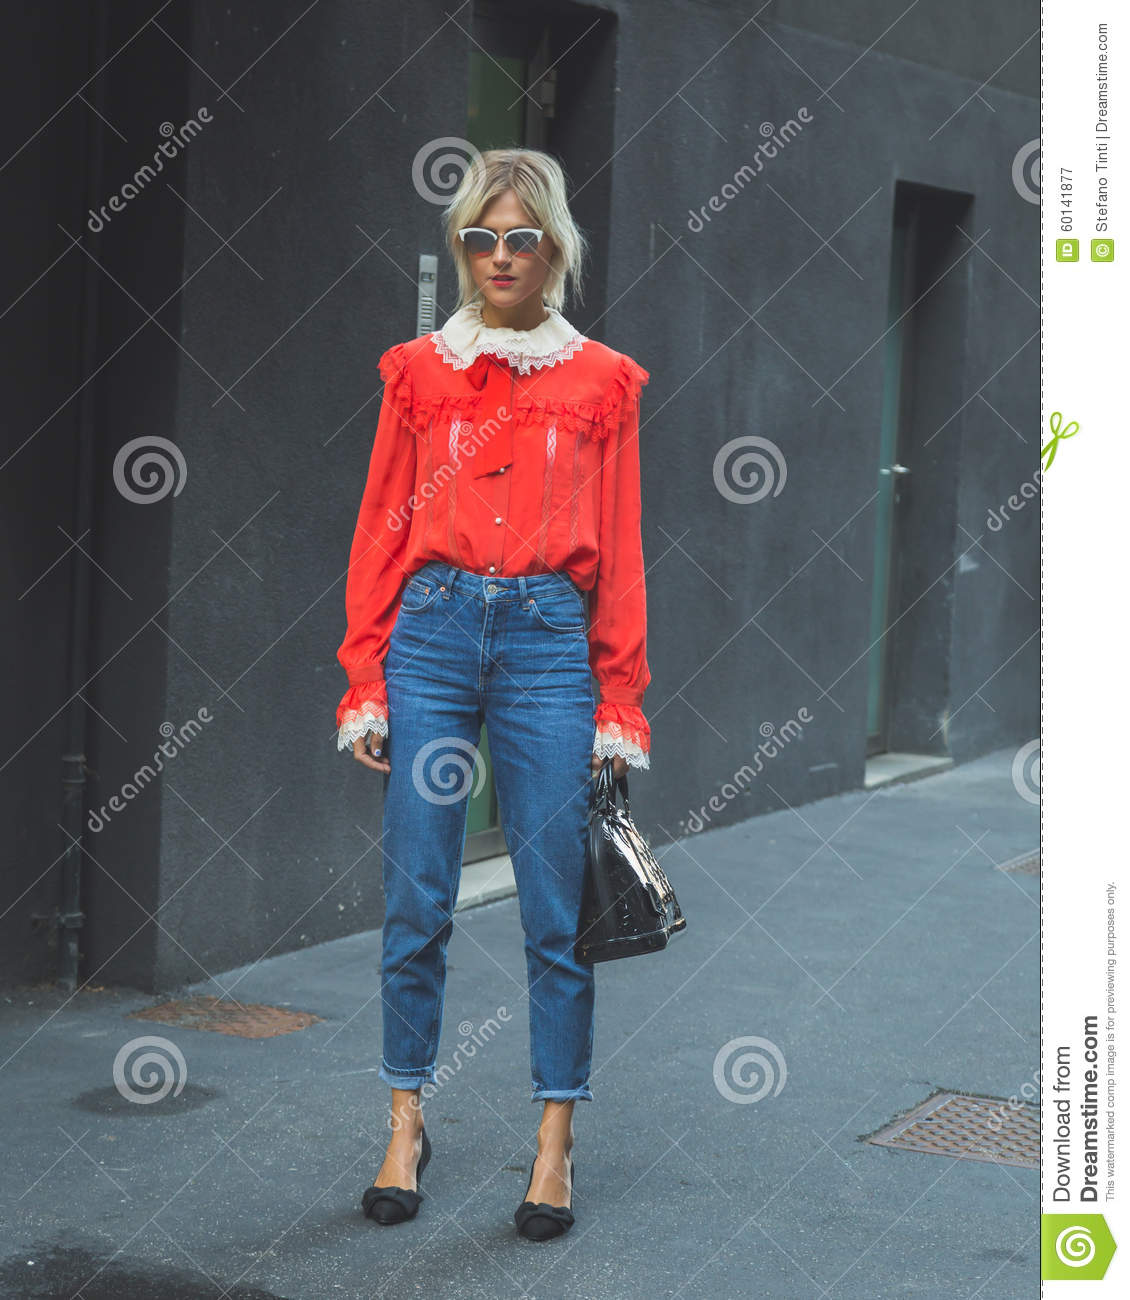 new concept f2886 07abc People Gather Outside Iceberg Fashion Show Building In Milan ...